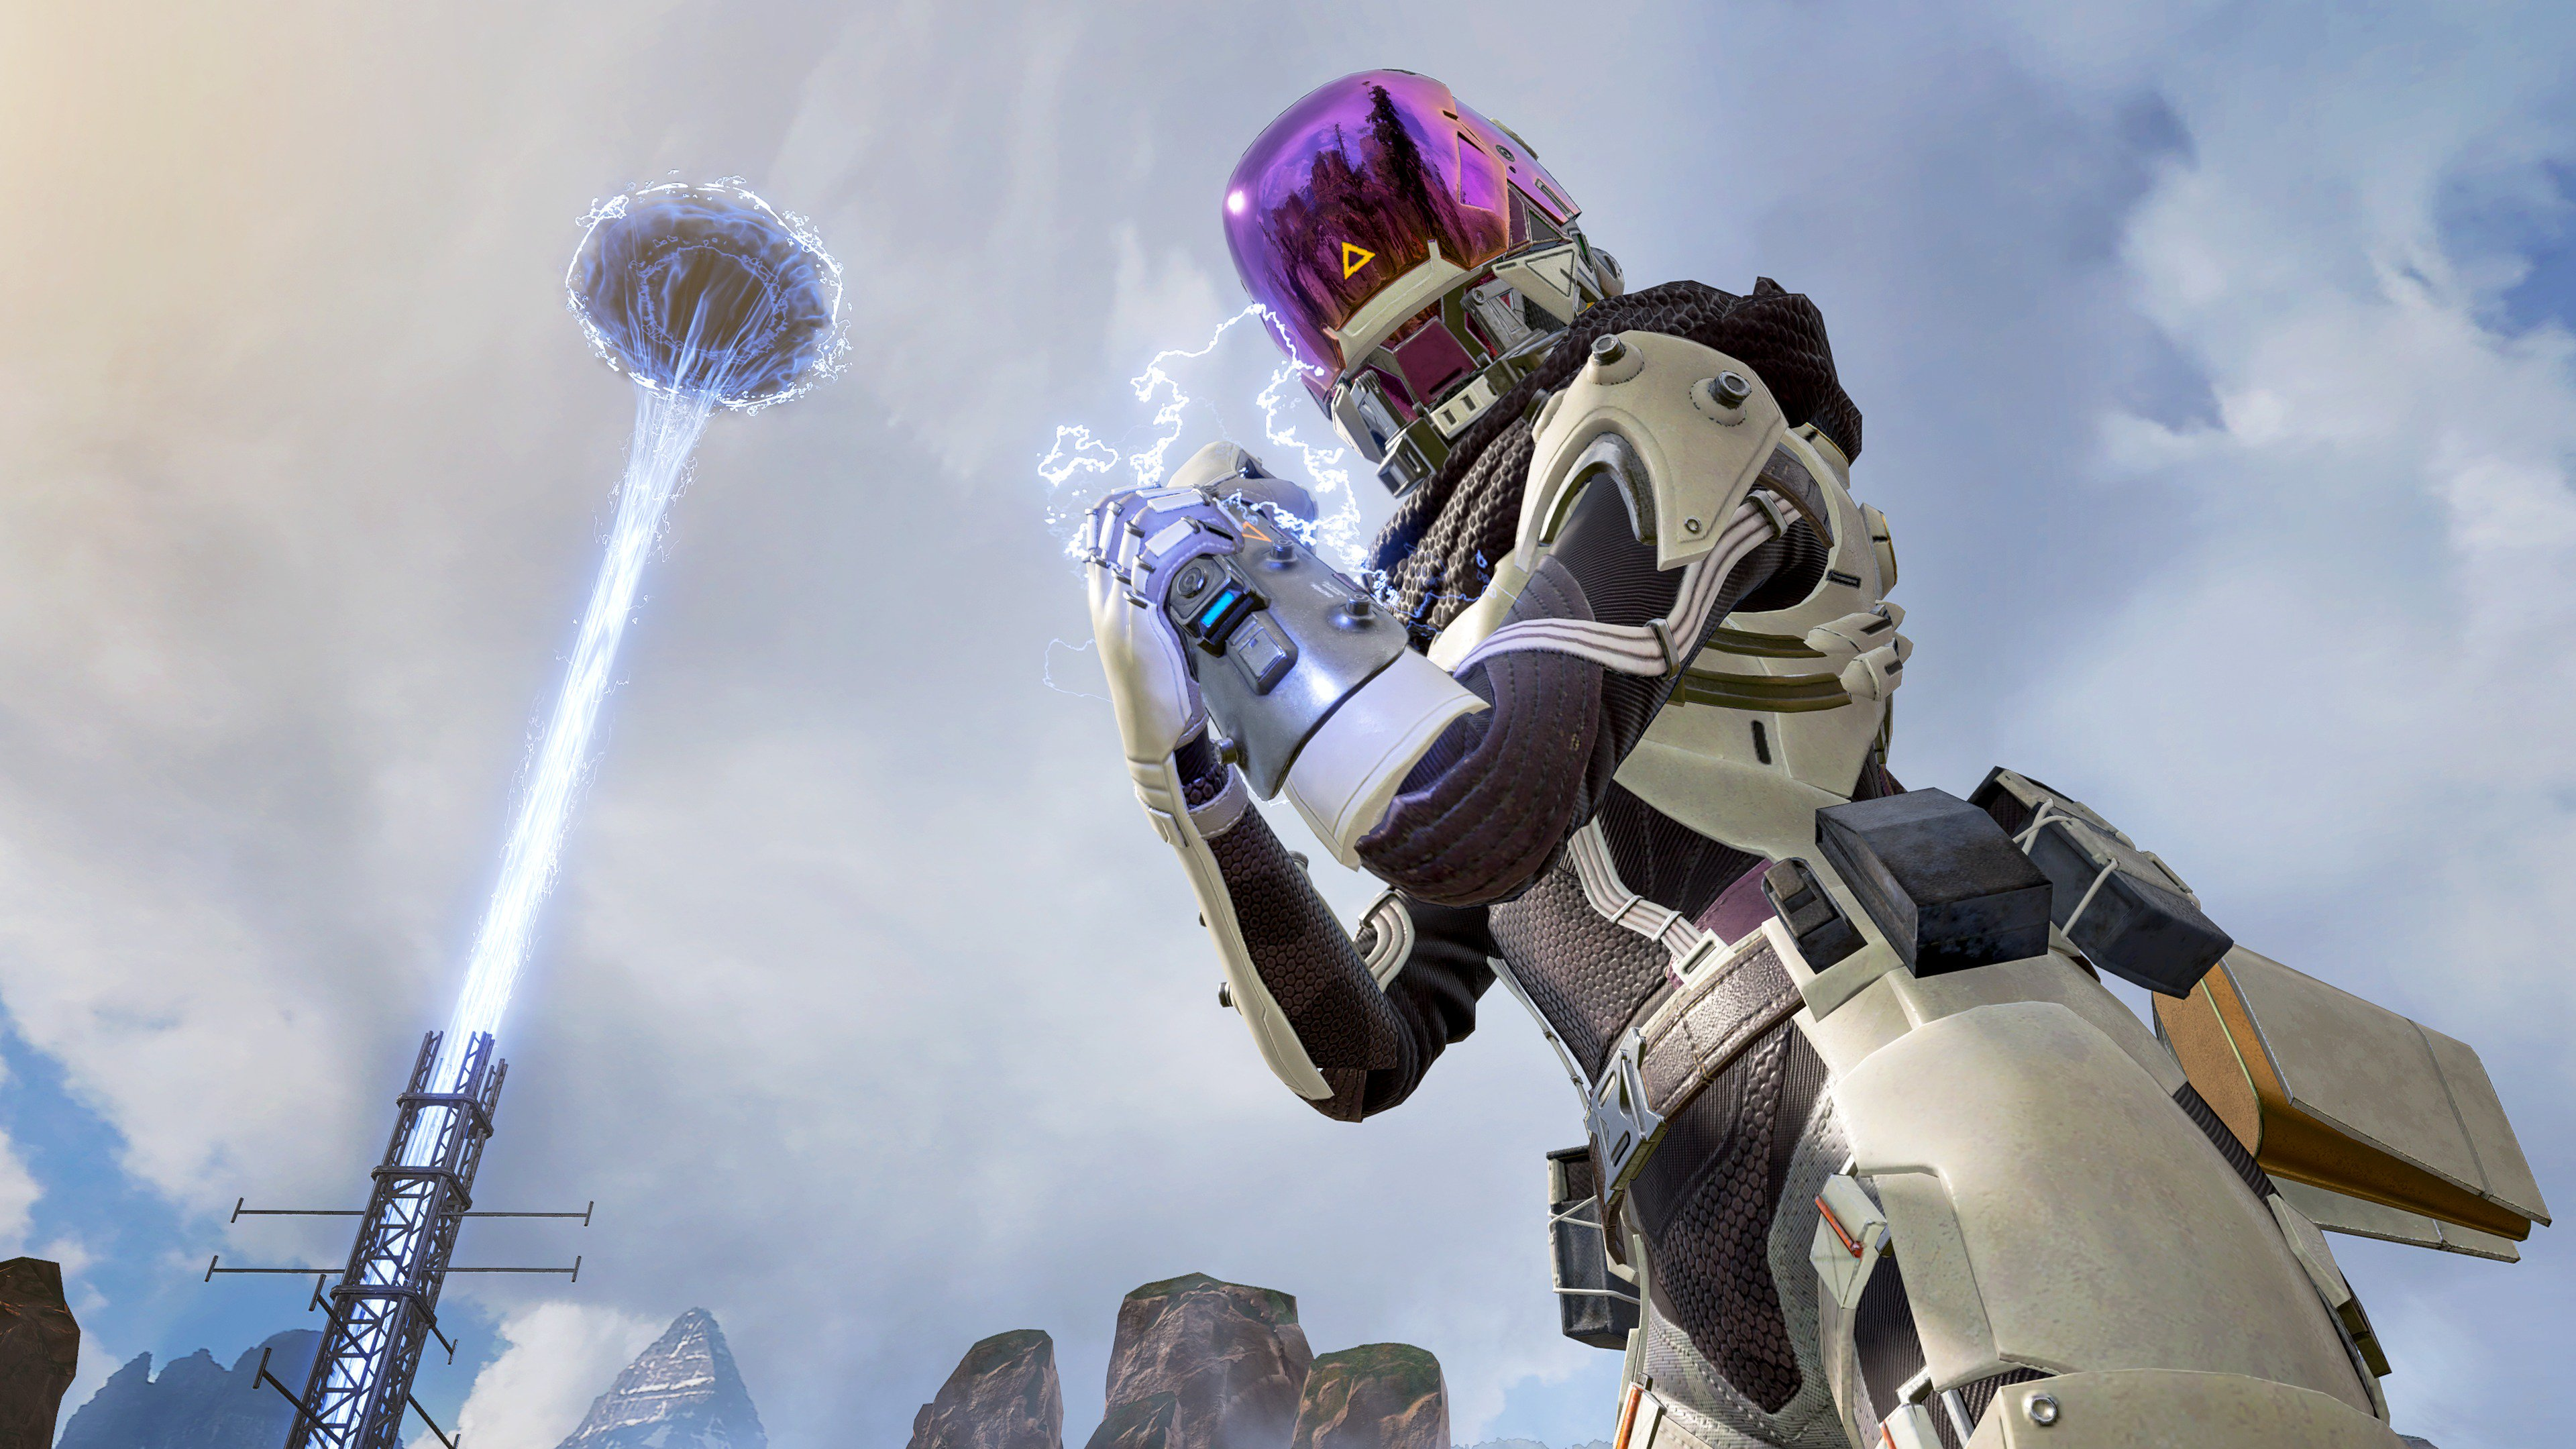 Game-breaking Wraith exploit allows Apex Legends players to reload and shoot guns while phasing in the void